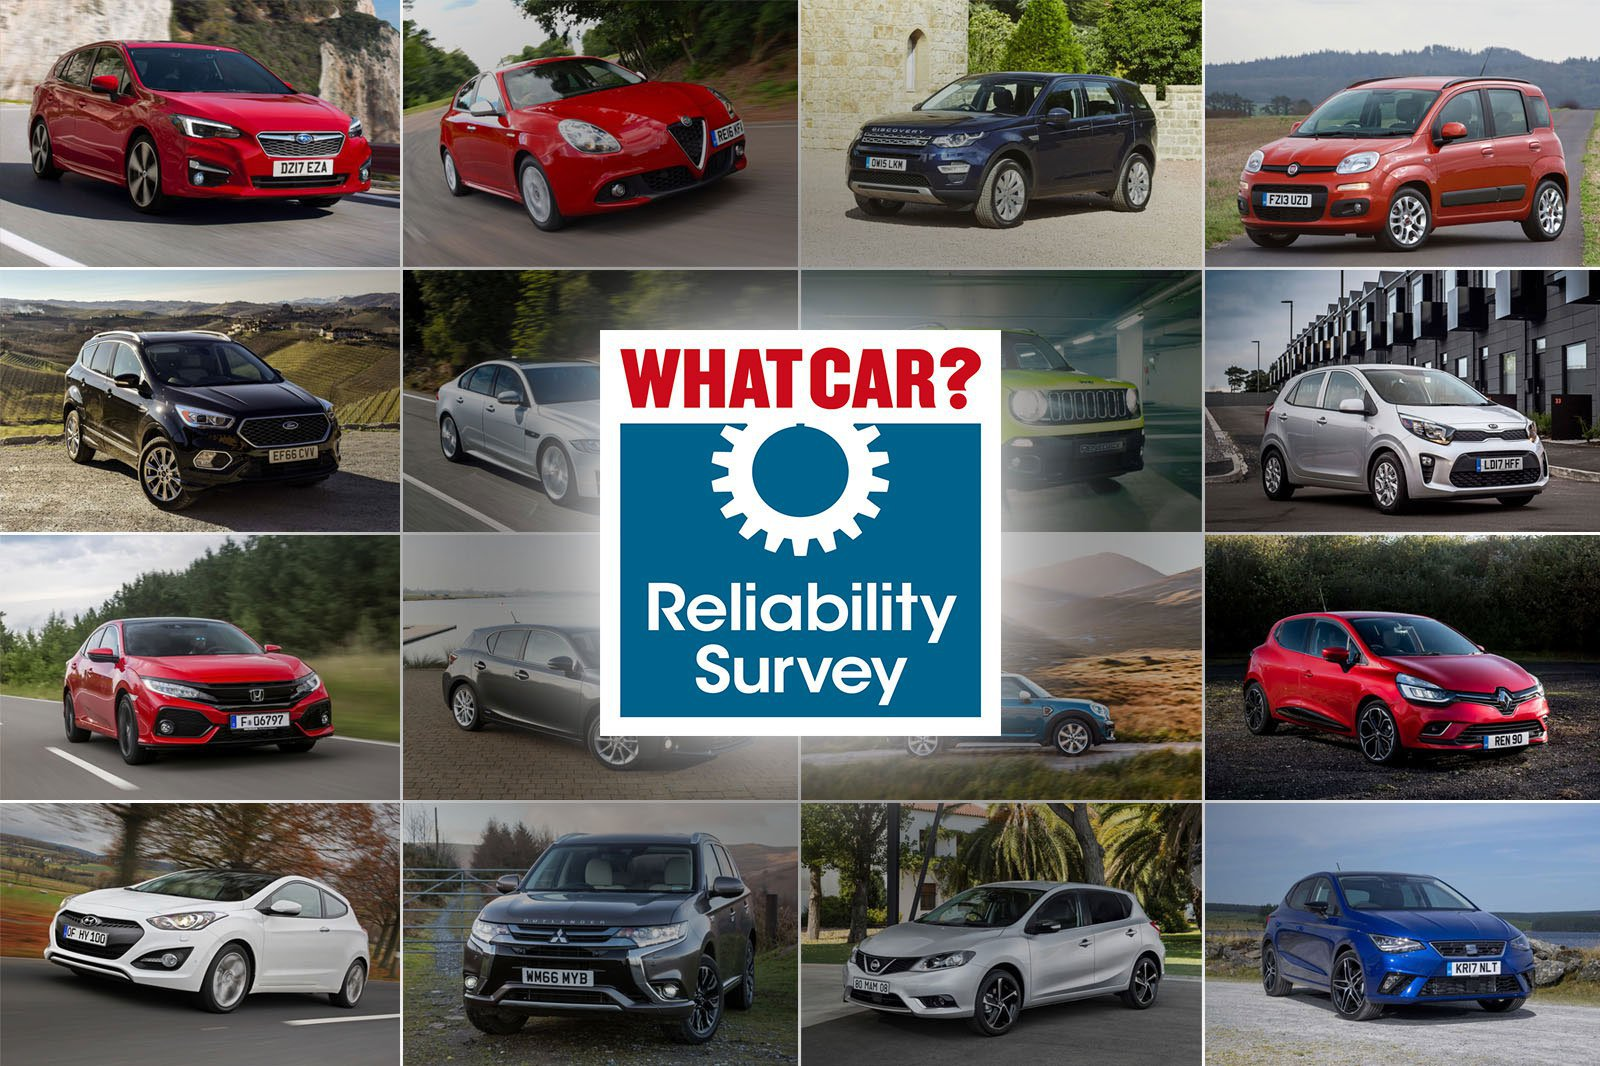 Reliability survey compilation image